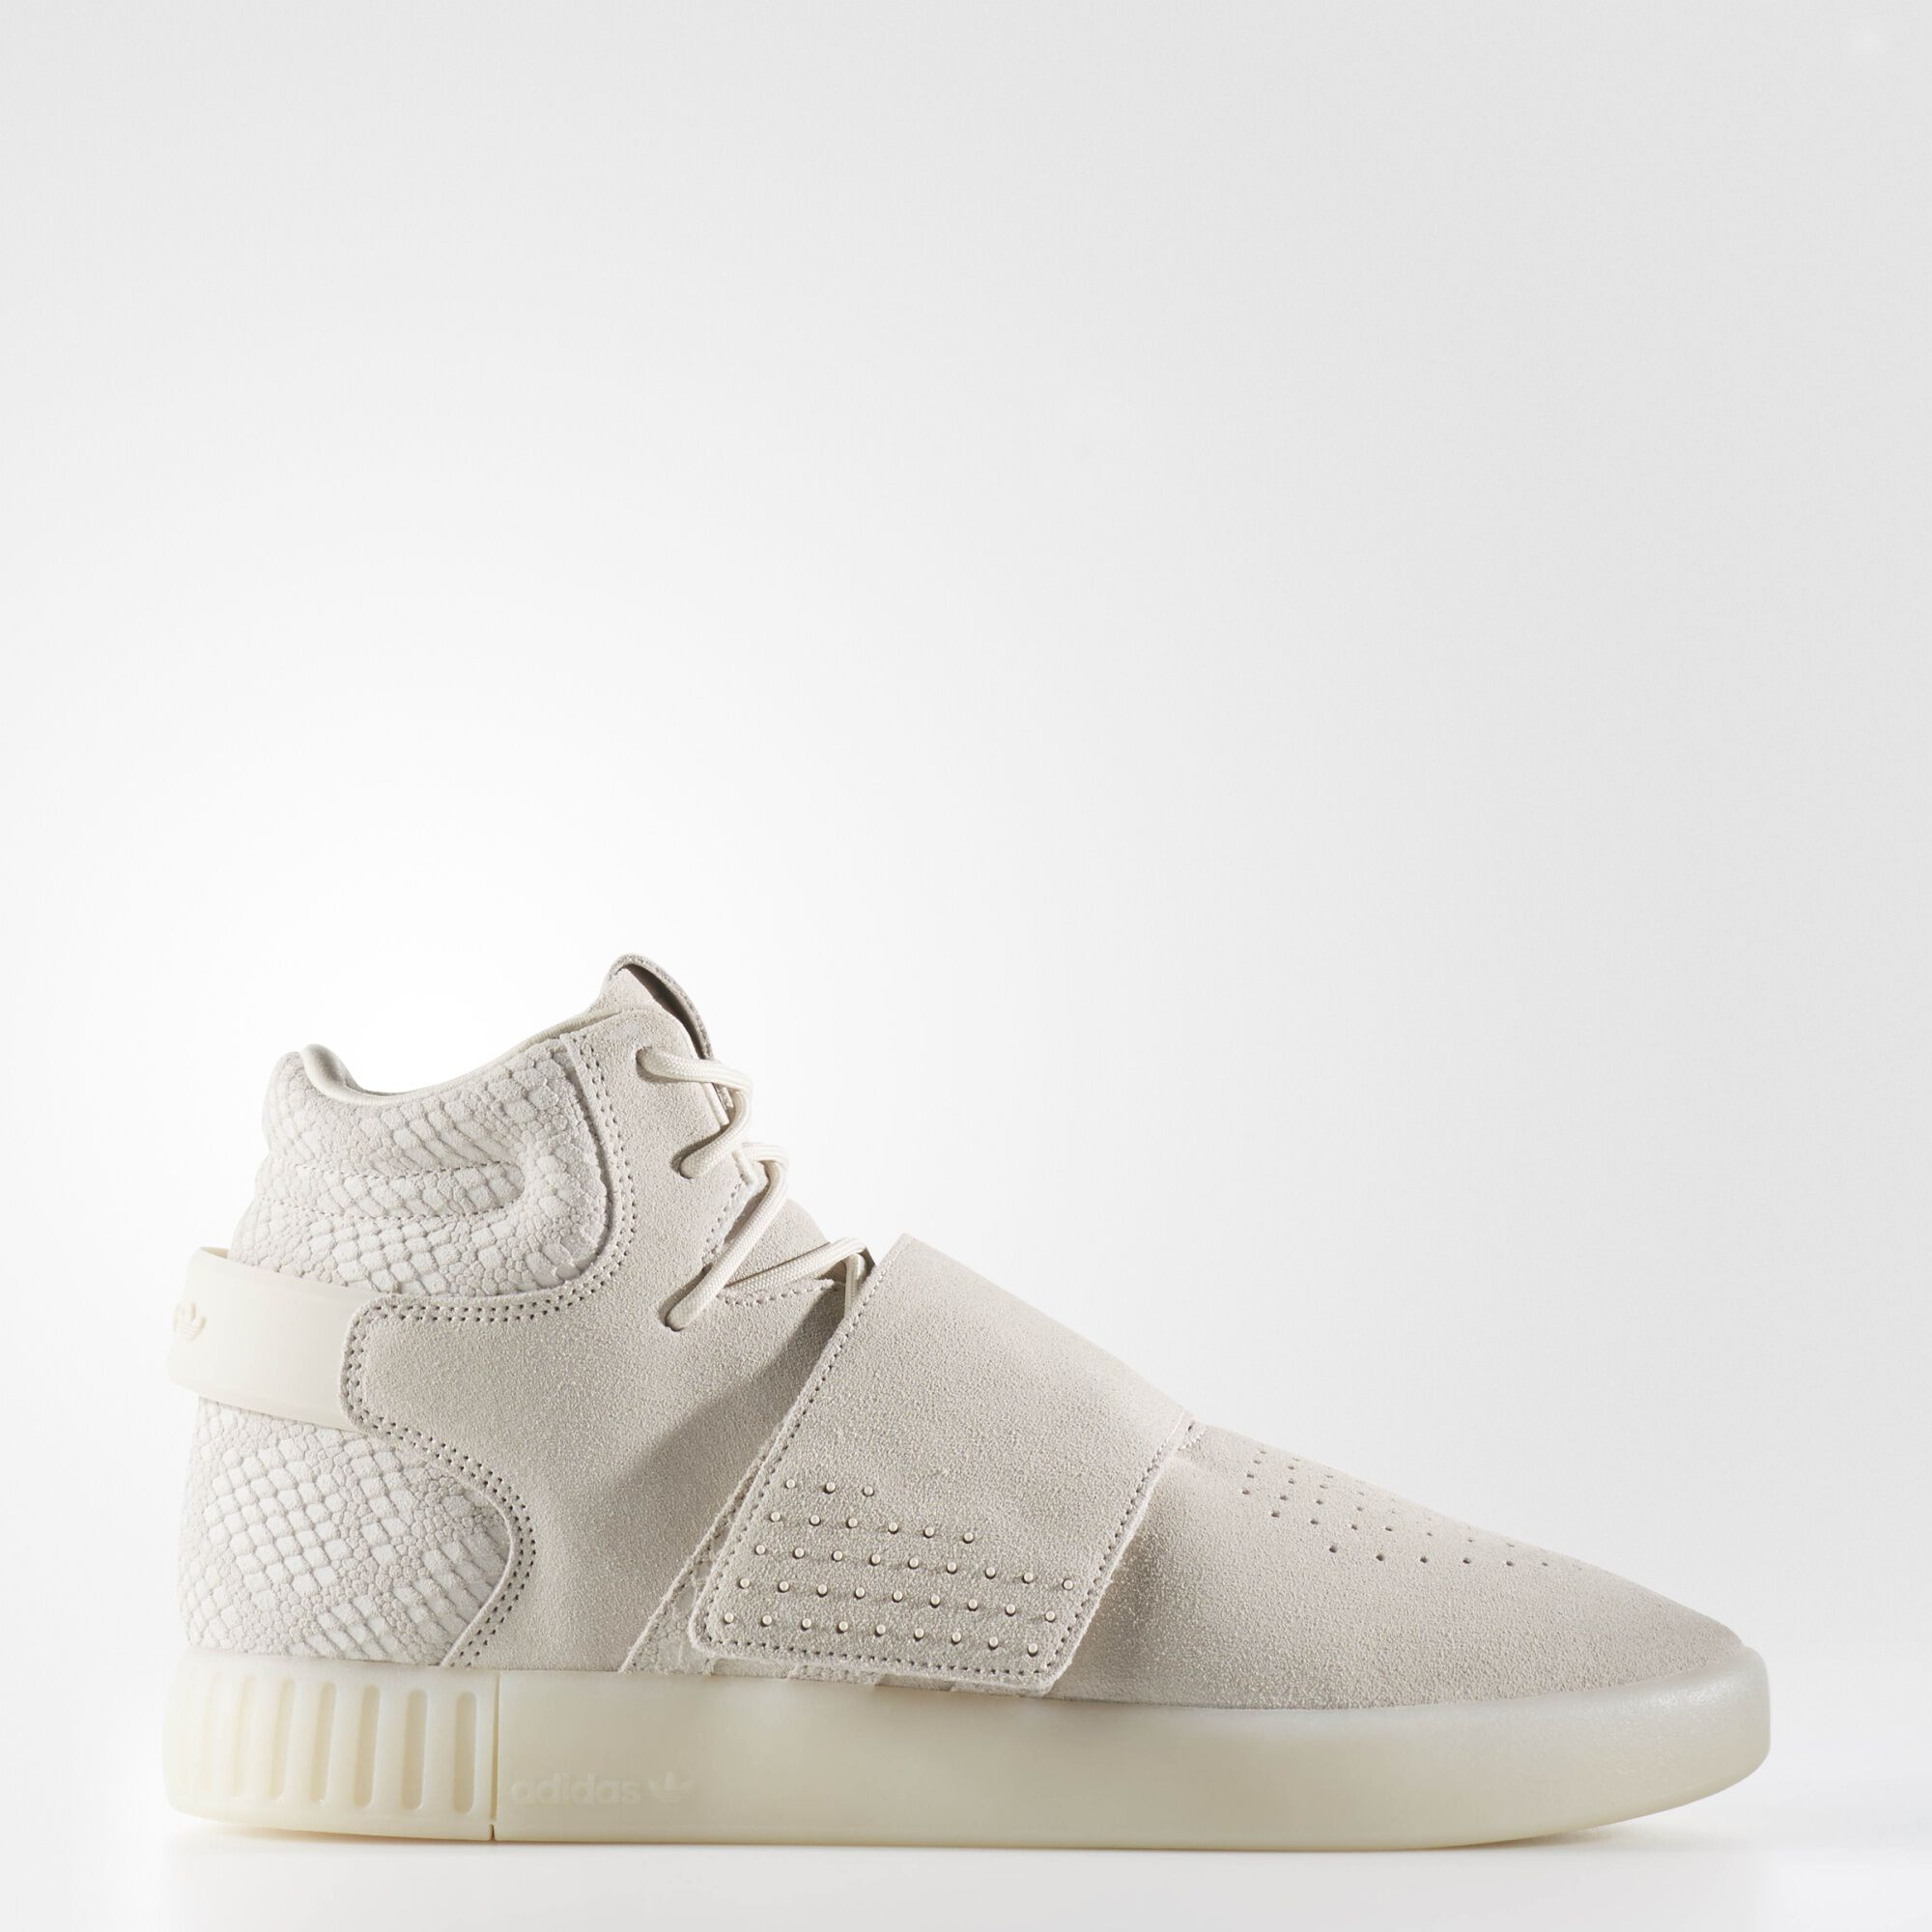 Adidas Tubular Invader Strap Men